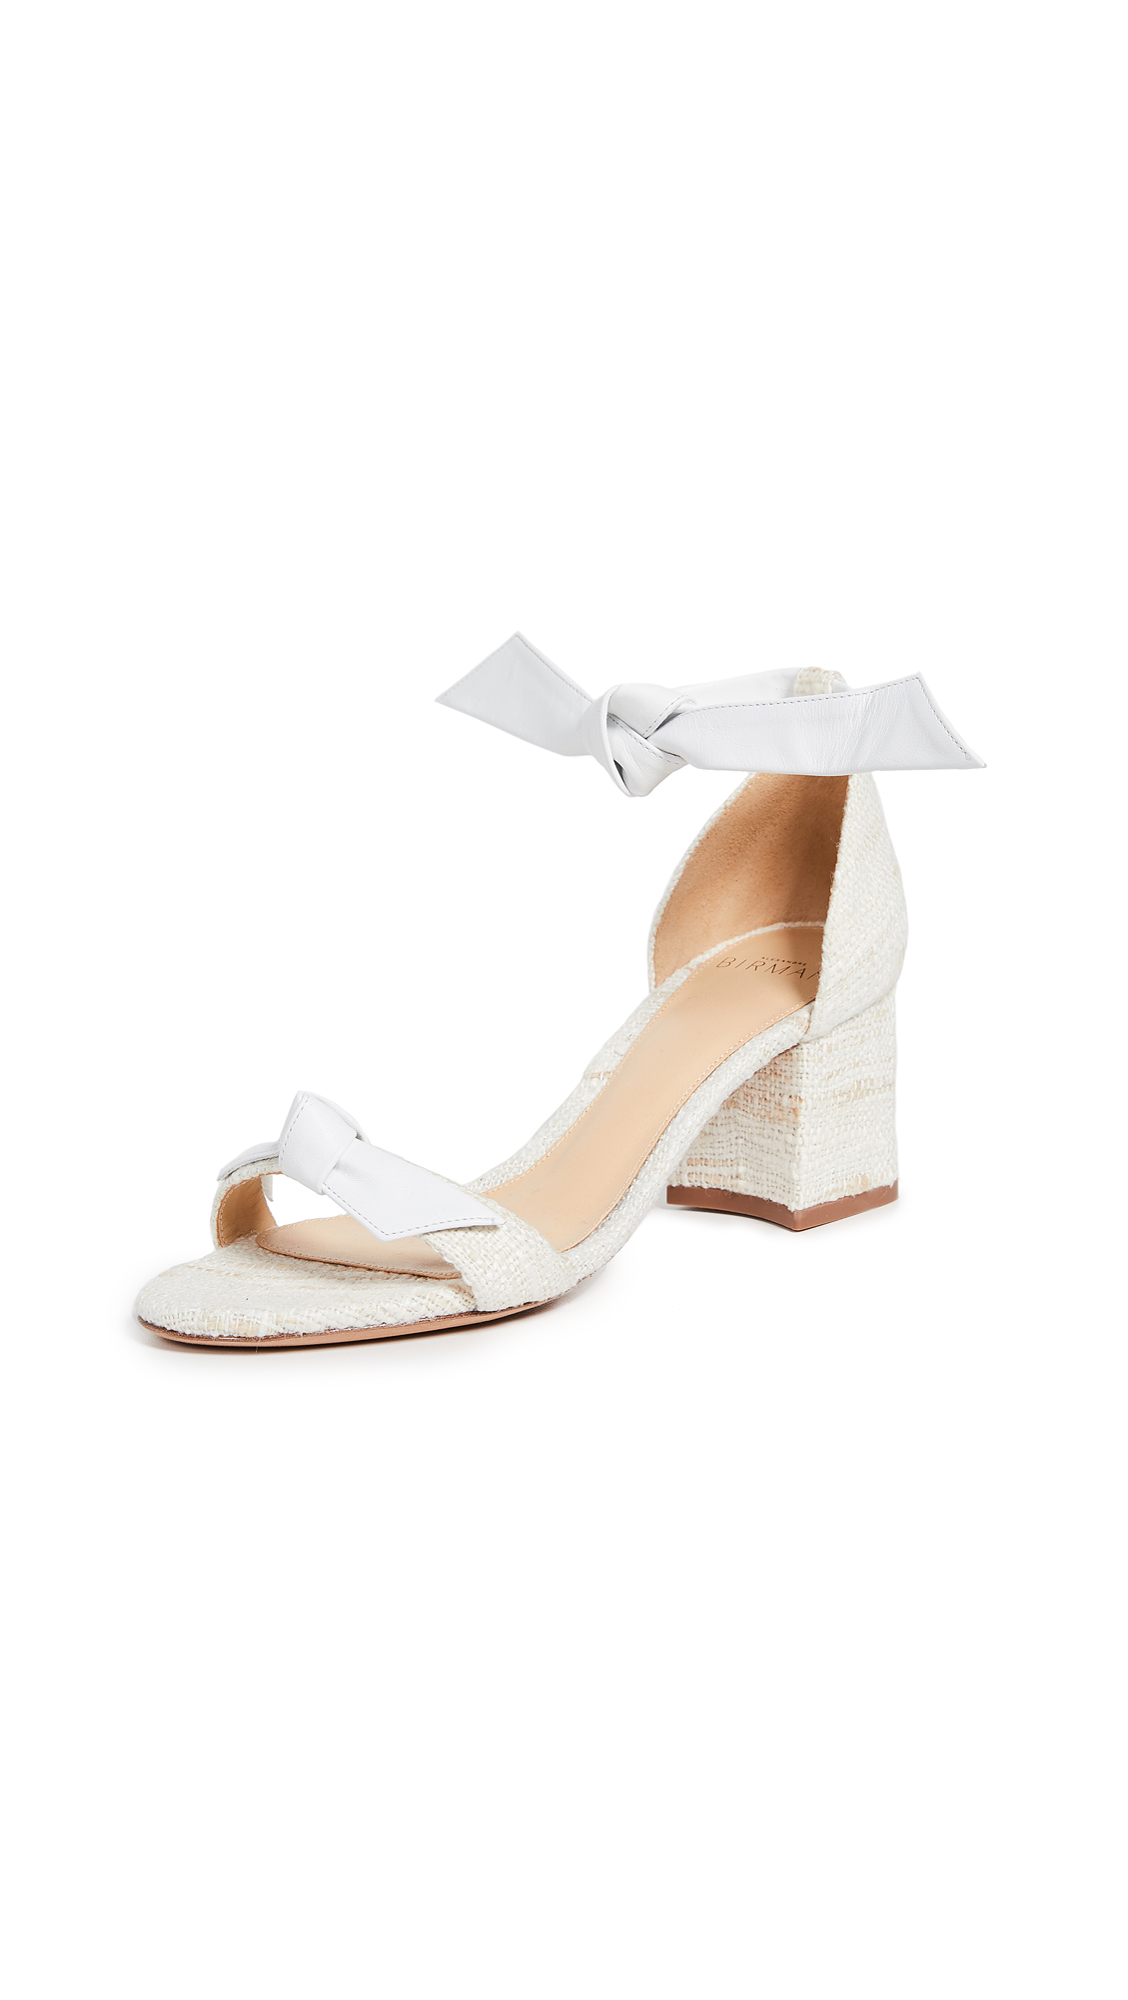 Alexandre Birman Clarita Block Sandals - White